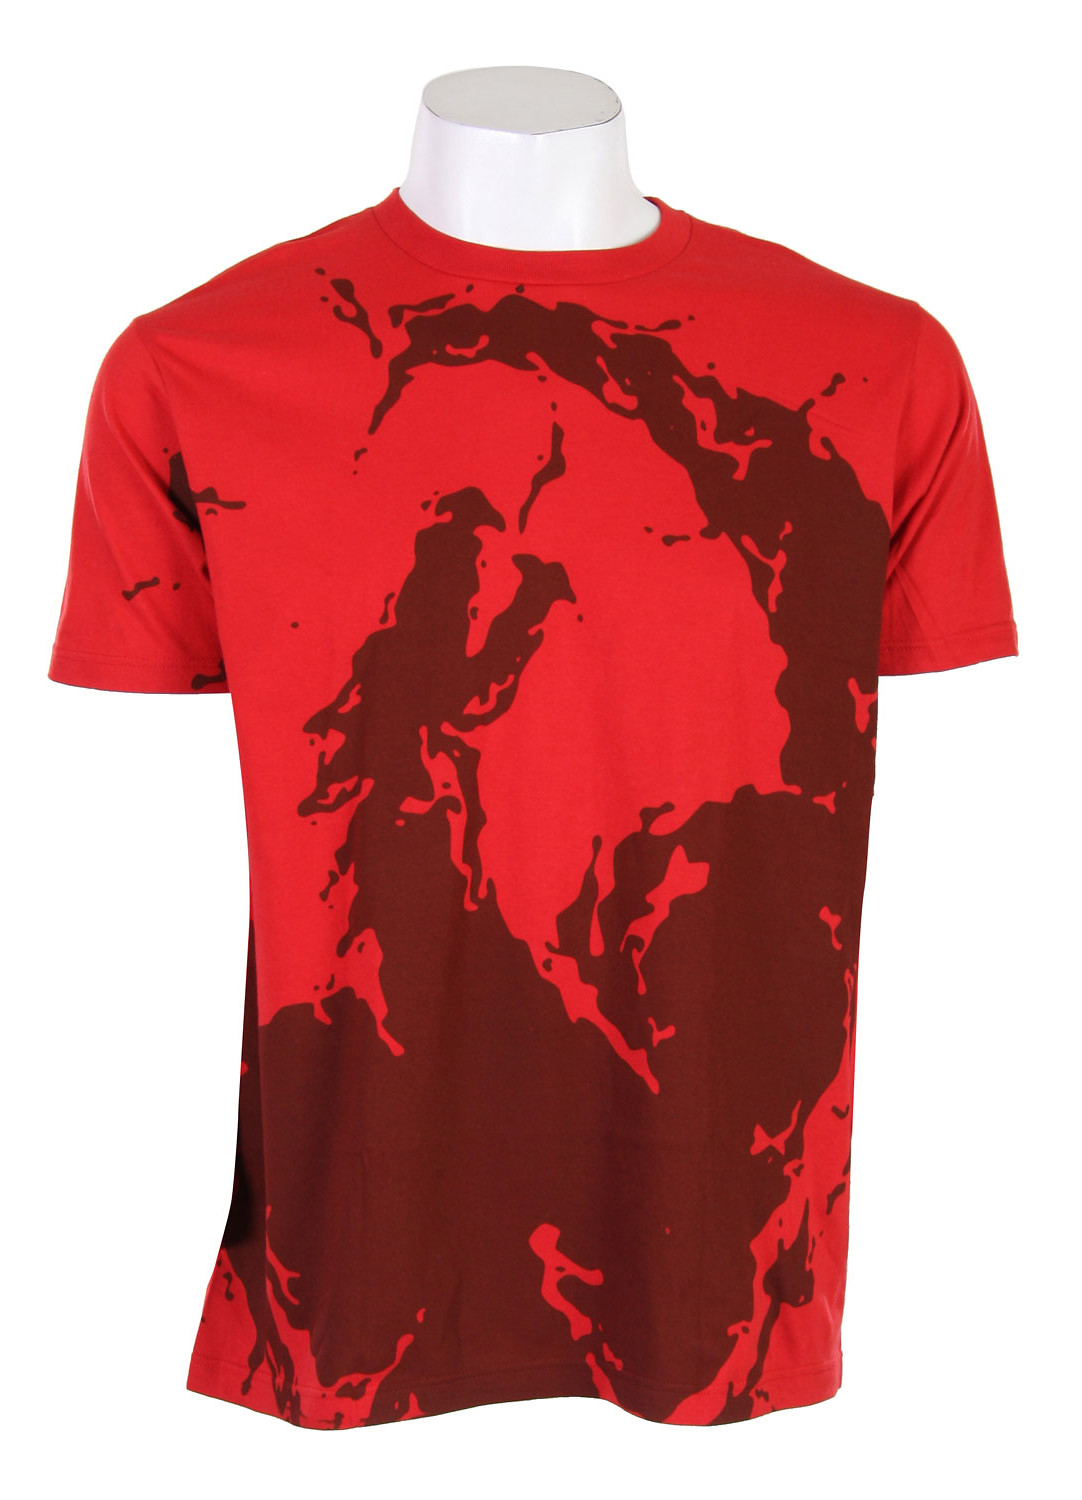 Dragon Lord Lister T-Shirt Dark Red  dragon-lordlister-t-red-09.jpg